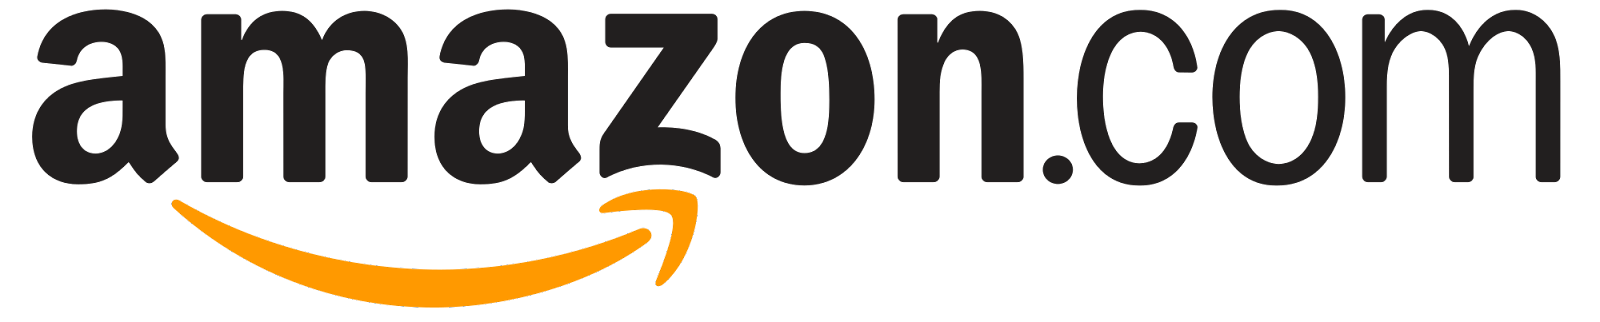 File:Amazon.com-Logo.svg - Wikimedia Commons